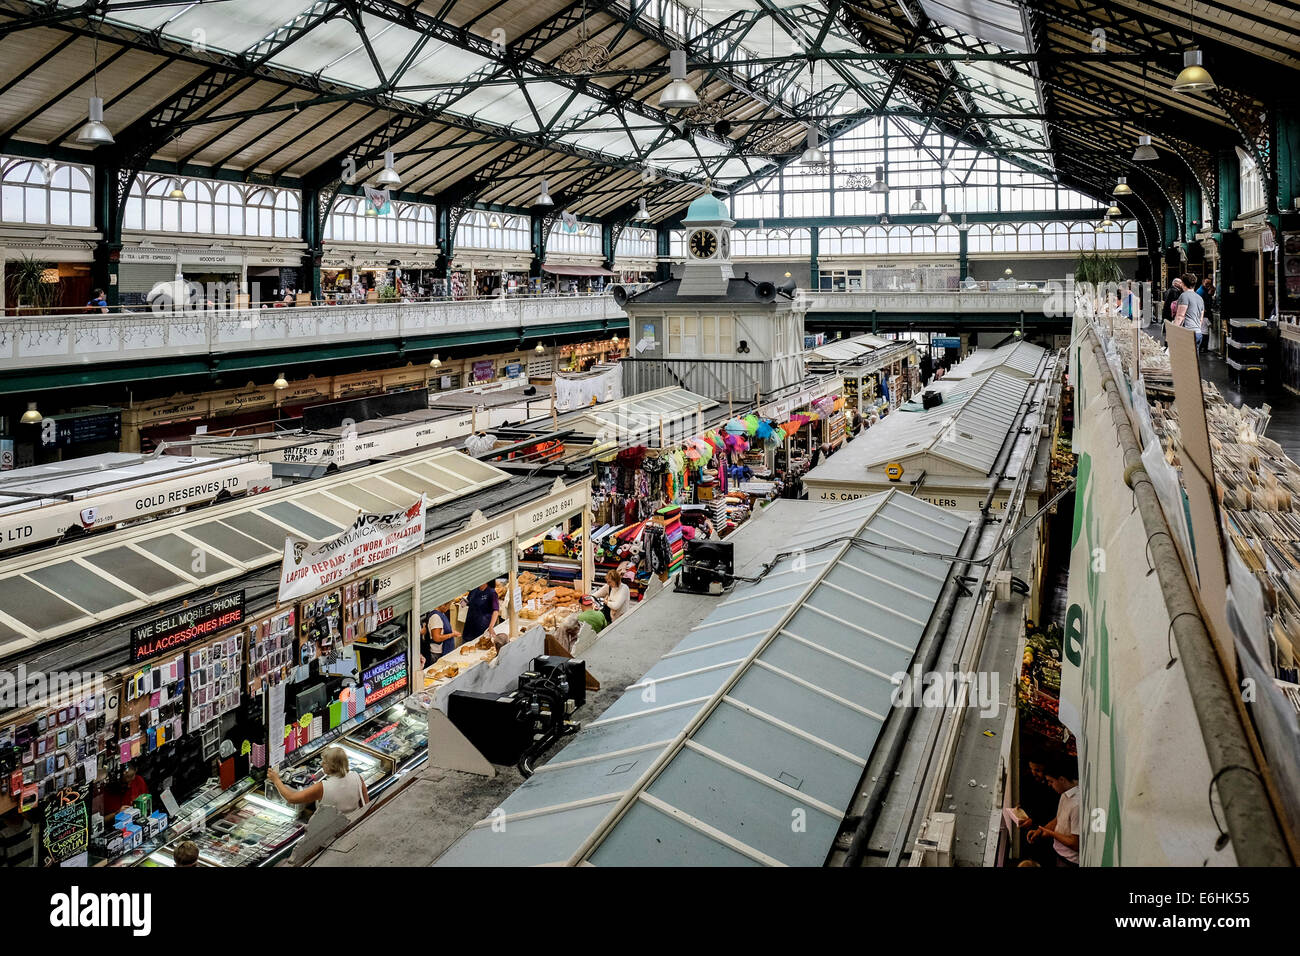 Cardiff Indoor Market. - Stock Image